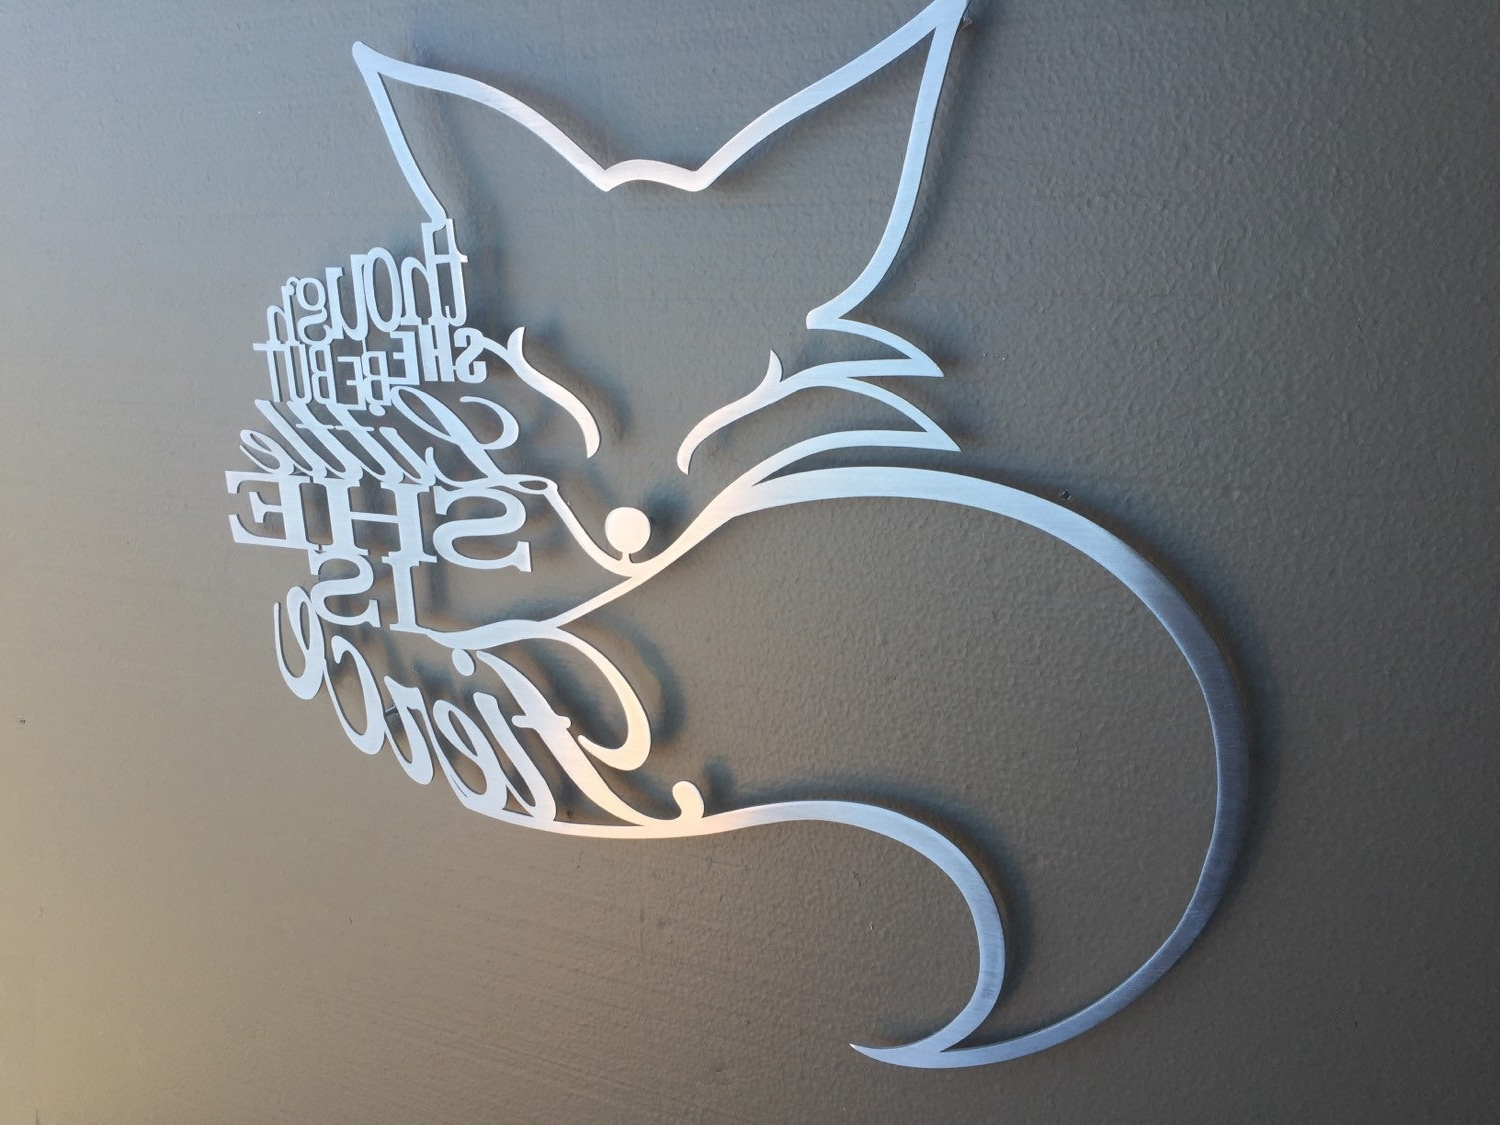 Wire Wall Art Decors Within Fashionable Wall Art: Best Design About Home Decor Metal Wall Art Decorative (View 15 of 15)